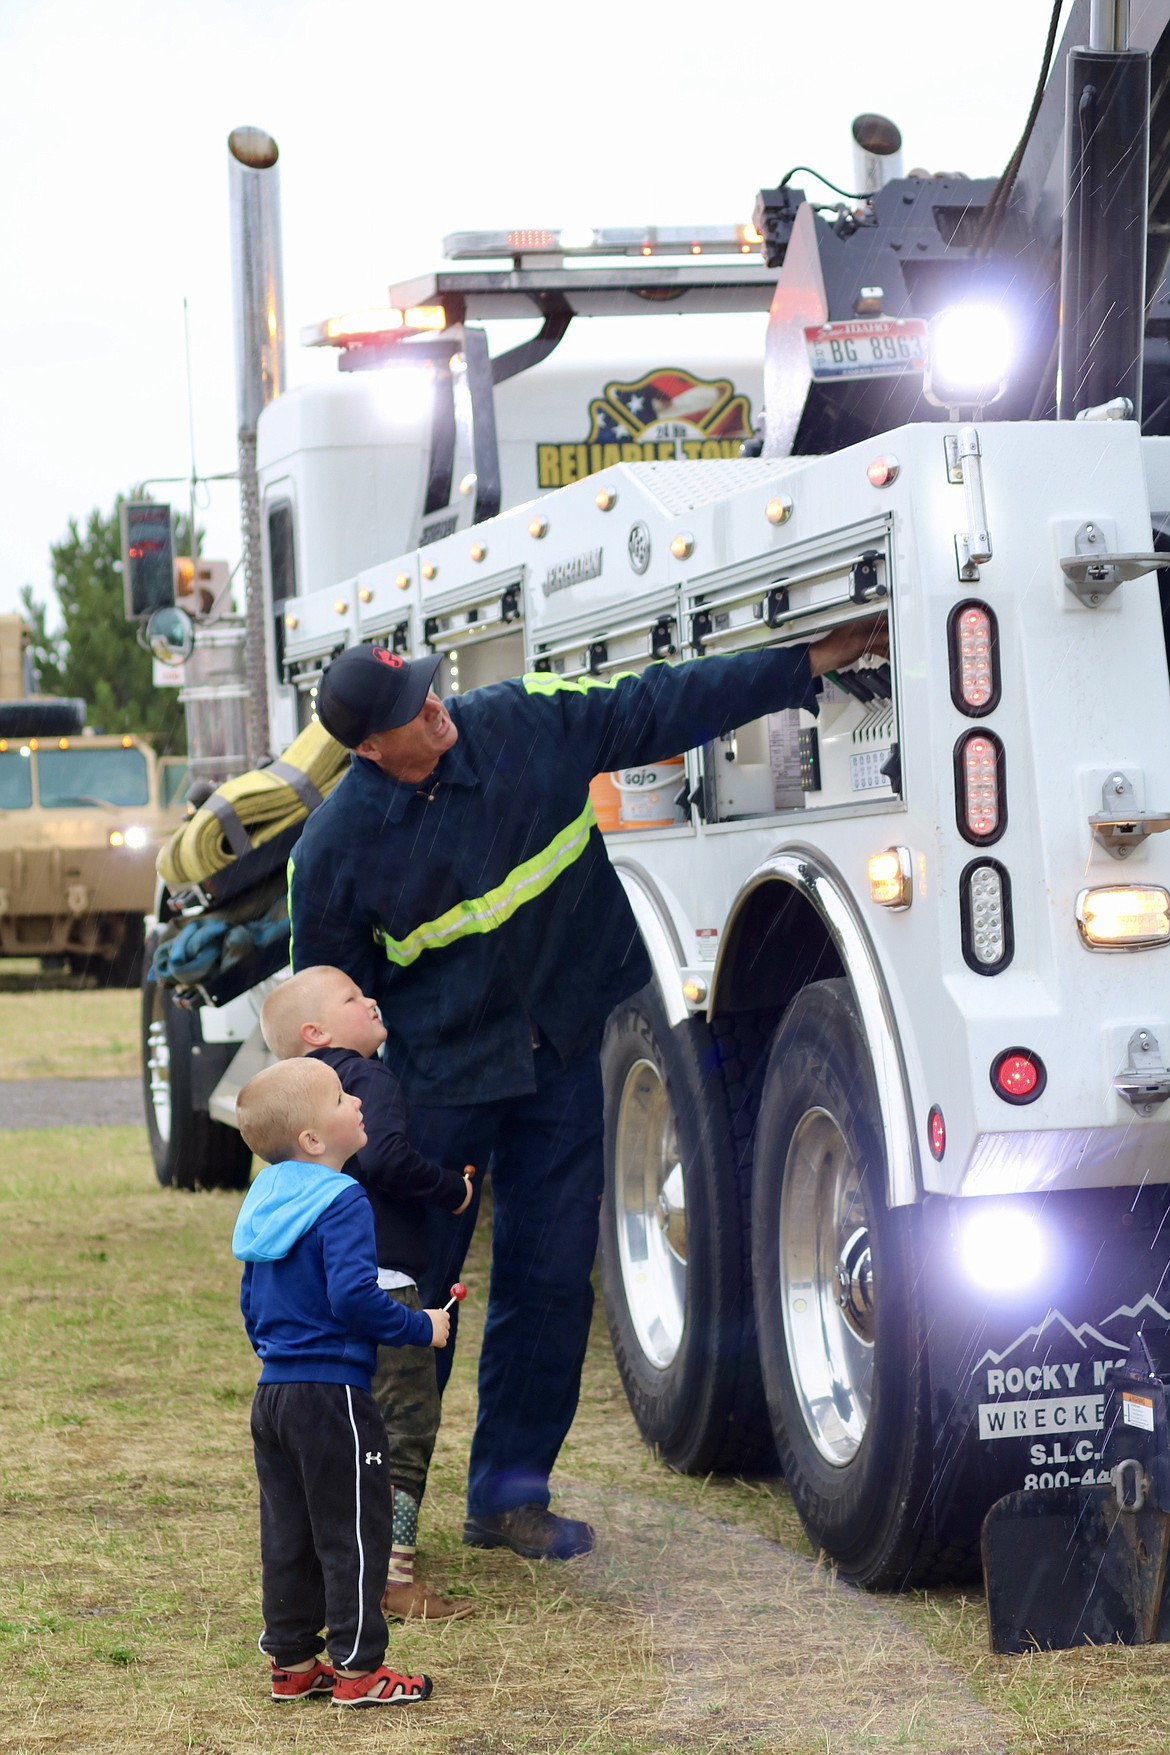 Tow truck operator Joe Andrews shows brothers Kade, 3, front, and Logan Abey, 4, how to operate the machine at Meet the Machines at the Kootenai County Fairgrounds on Saturday morning. HANNAH NEFF/Press